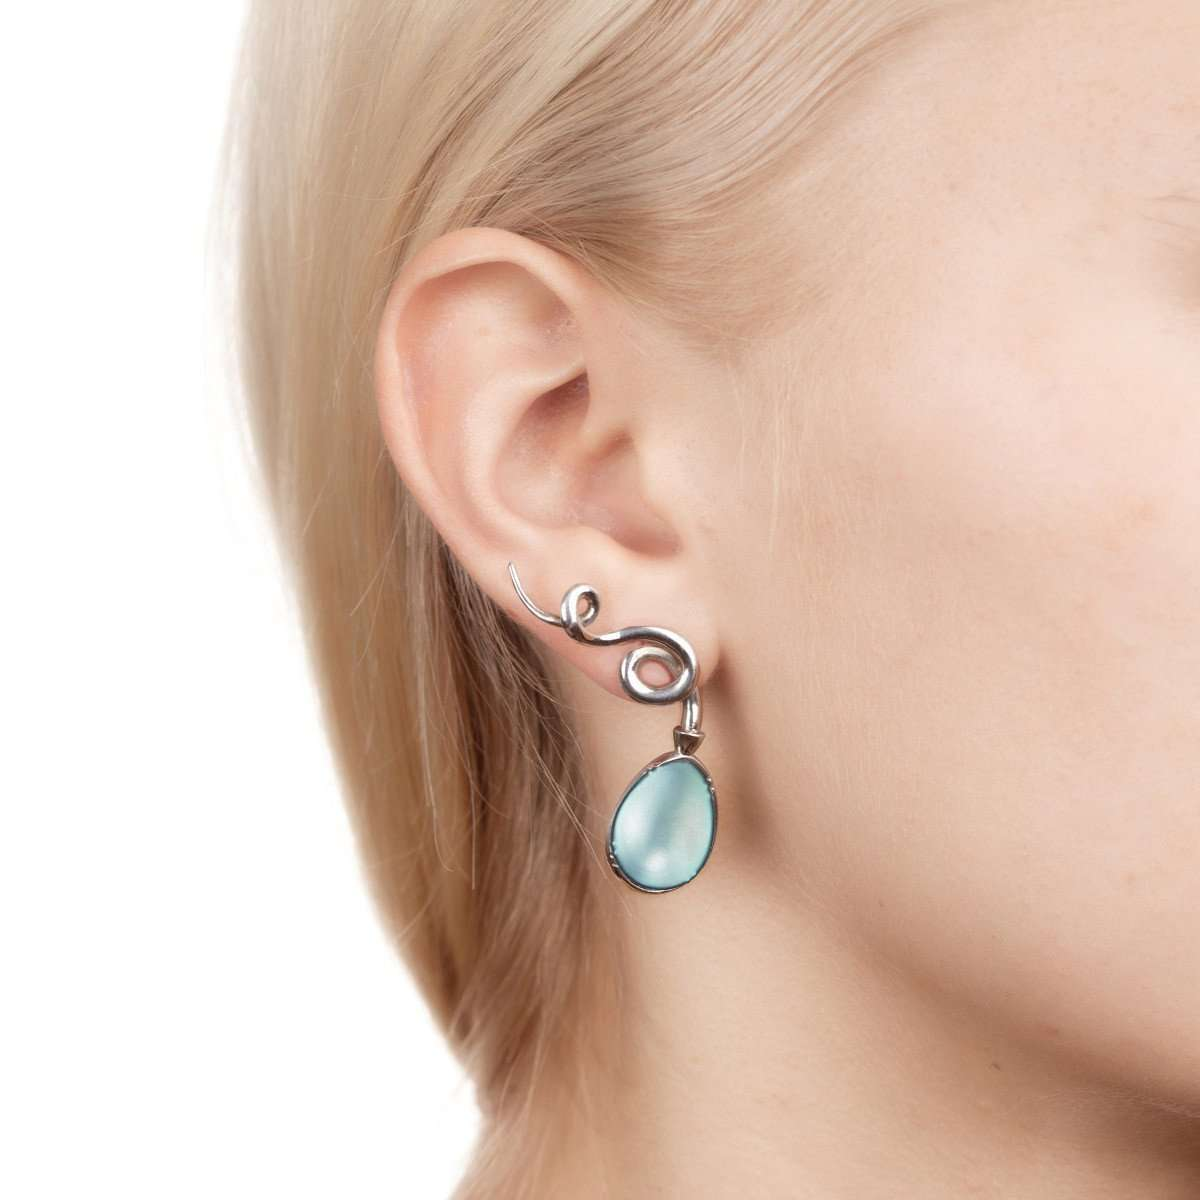 Curl Earrings Small Polar Blue-Hyrv-JewelStreet US